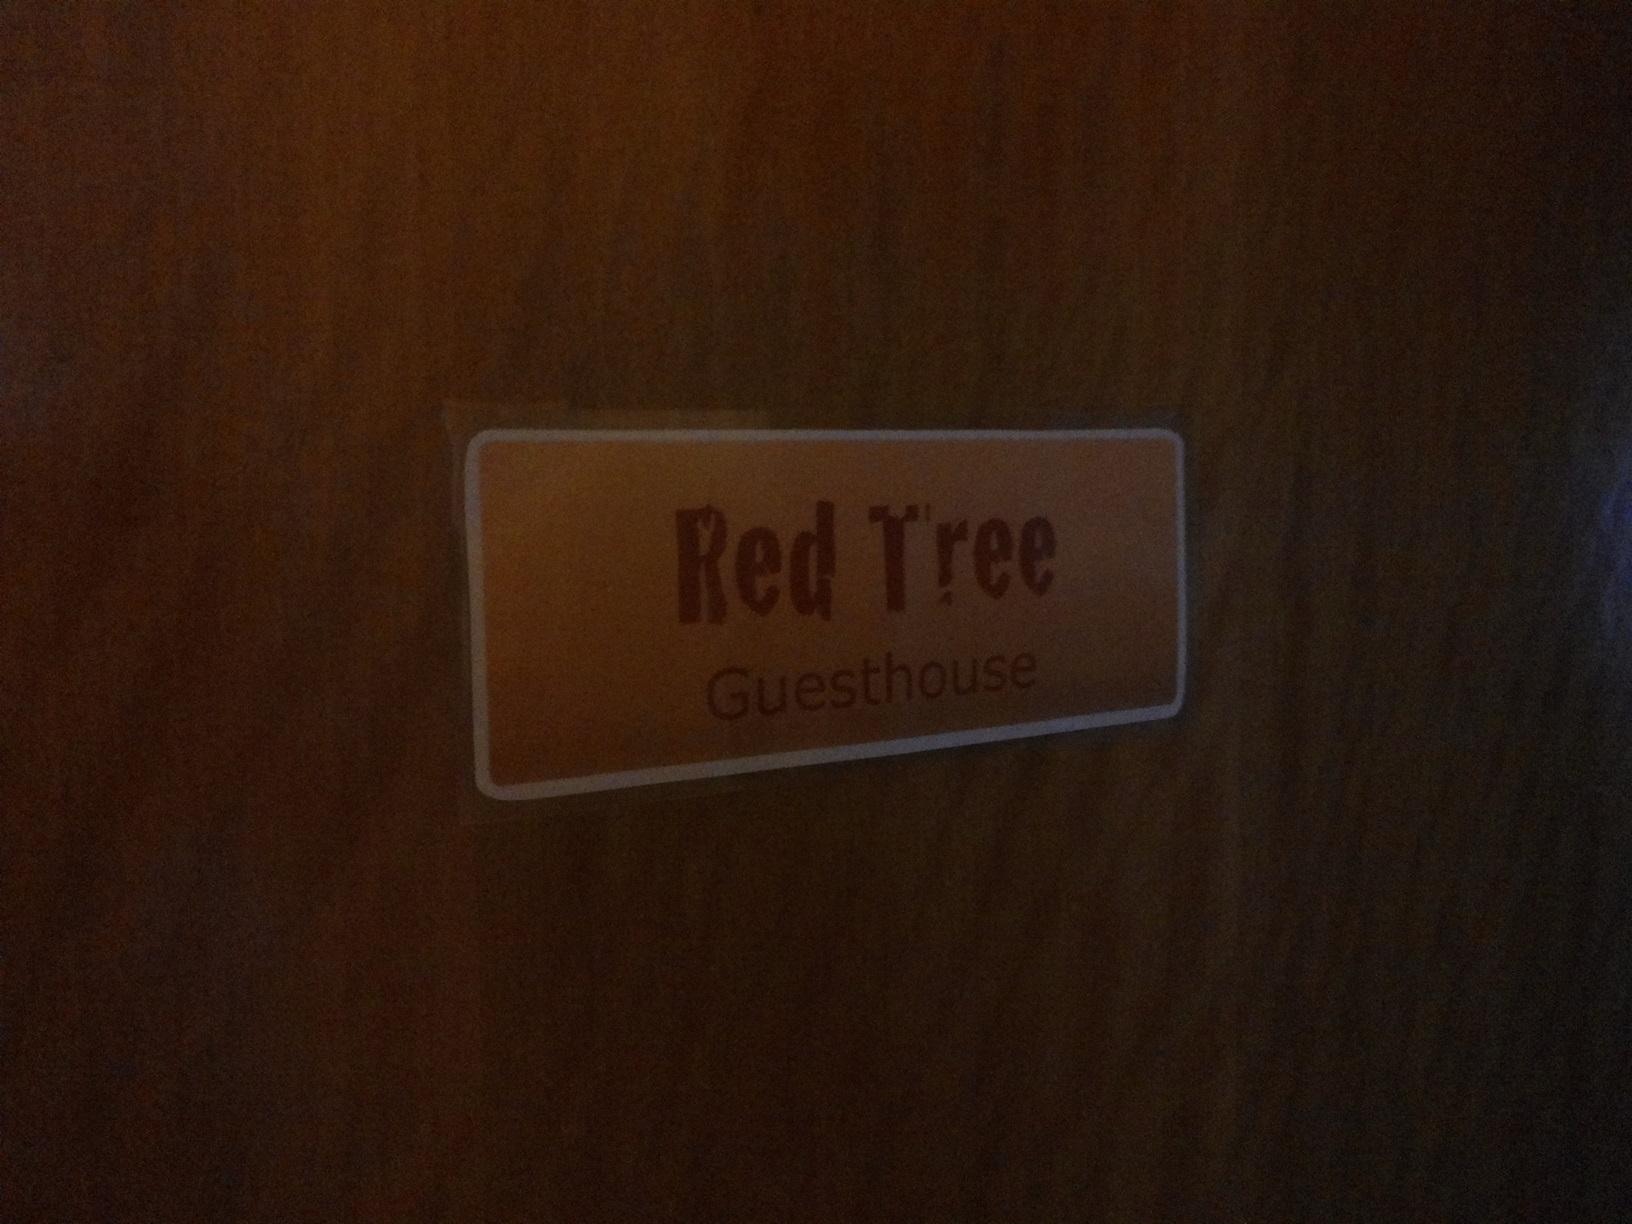 Red Tree House8